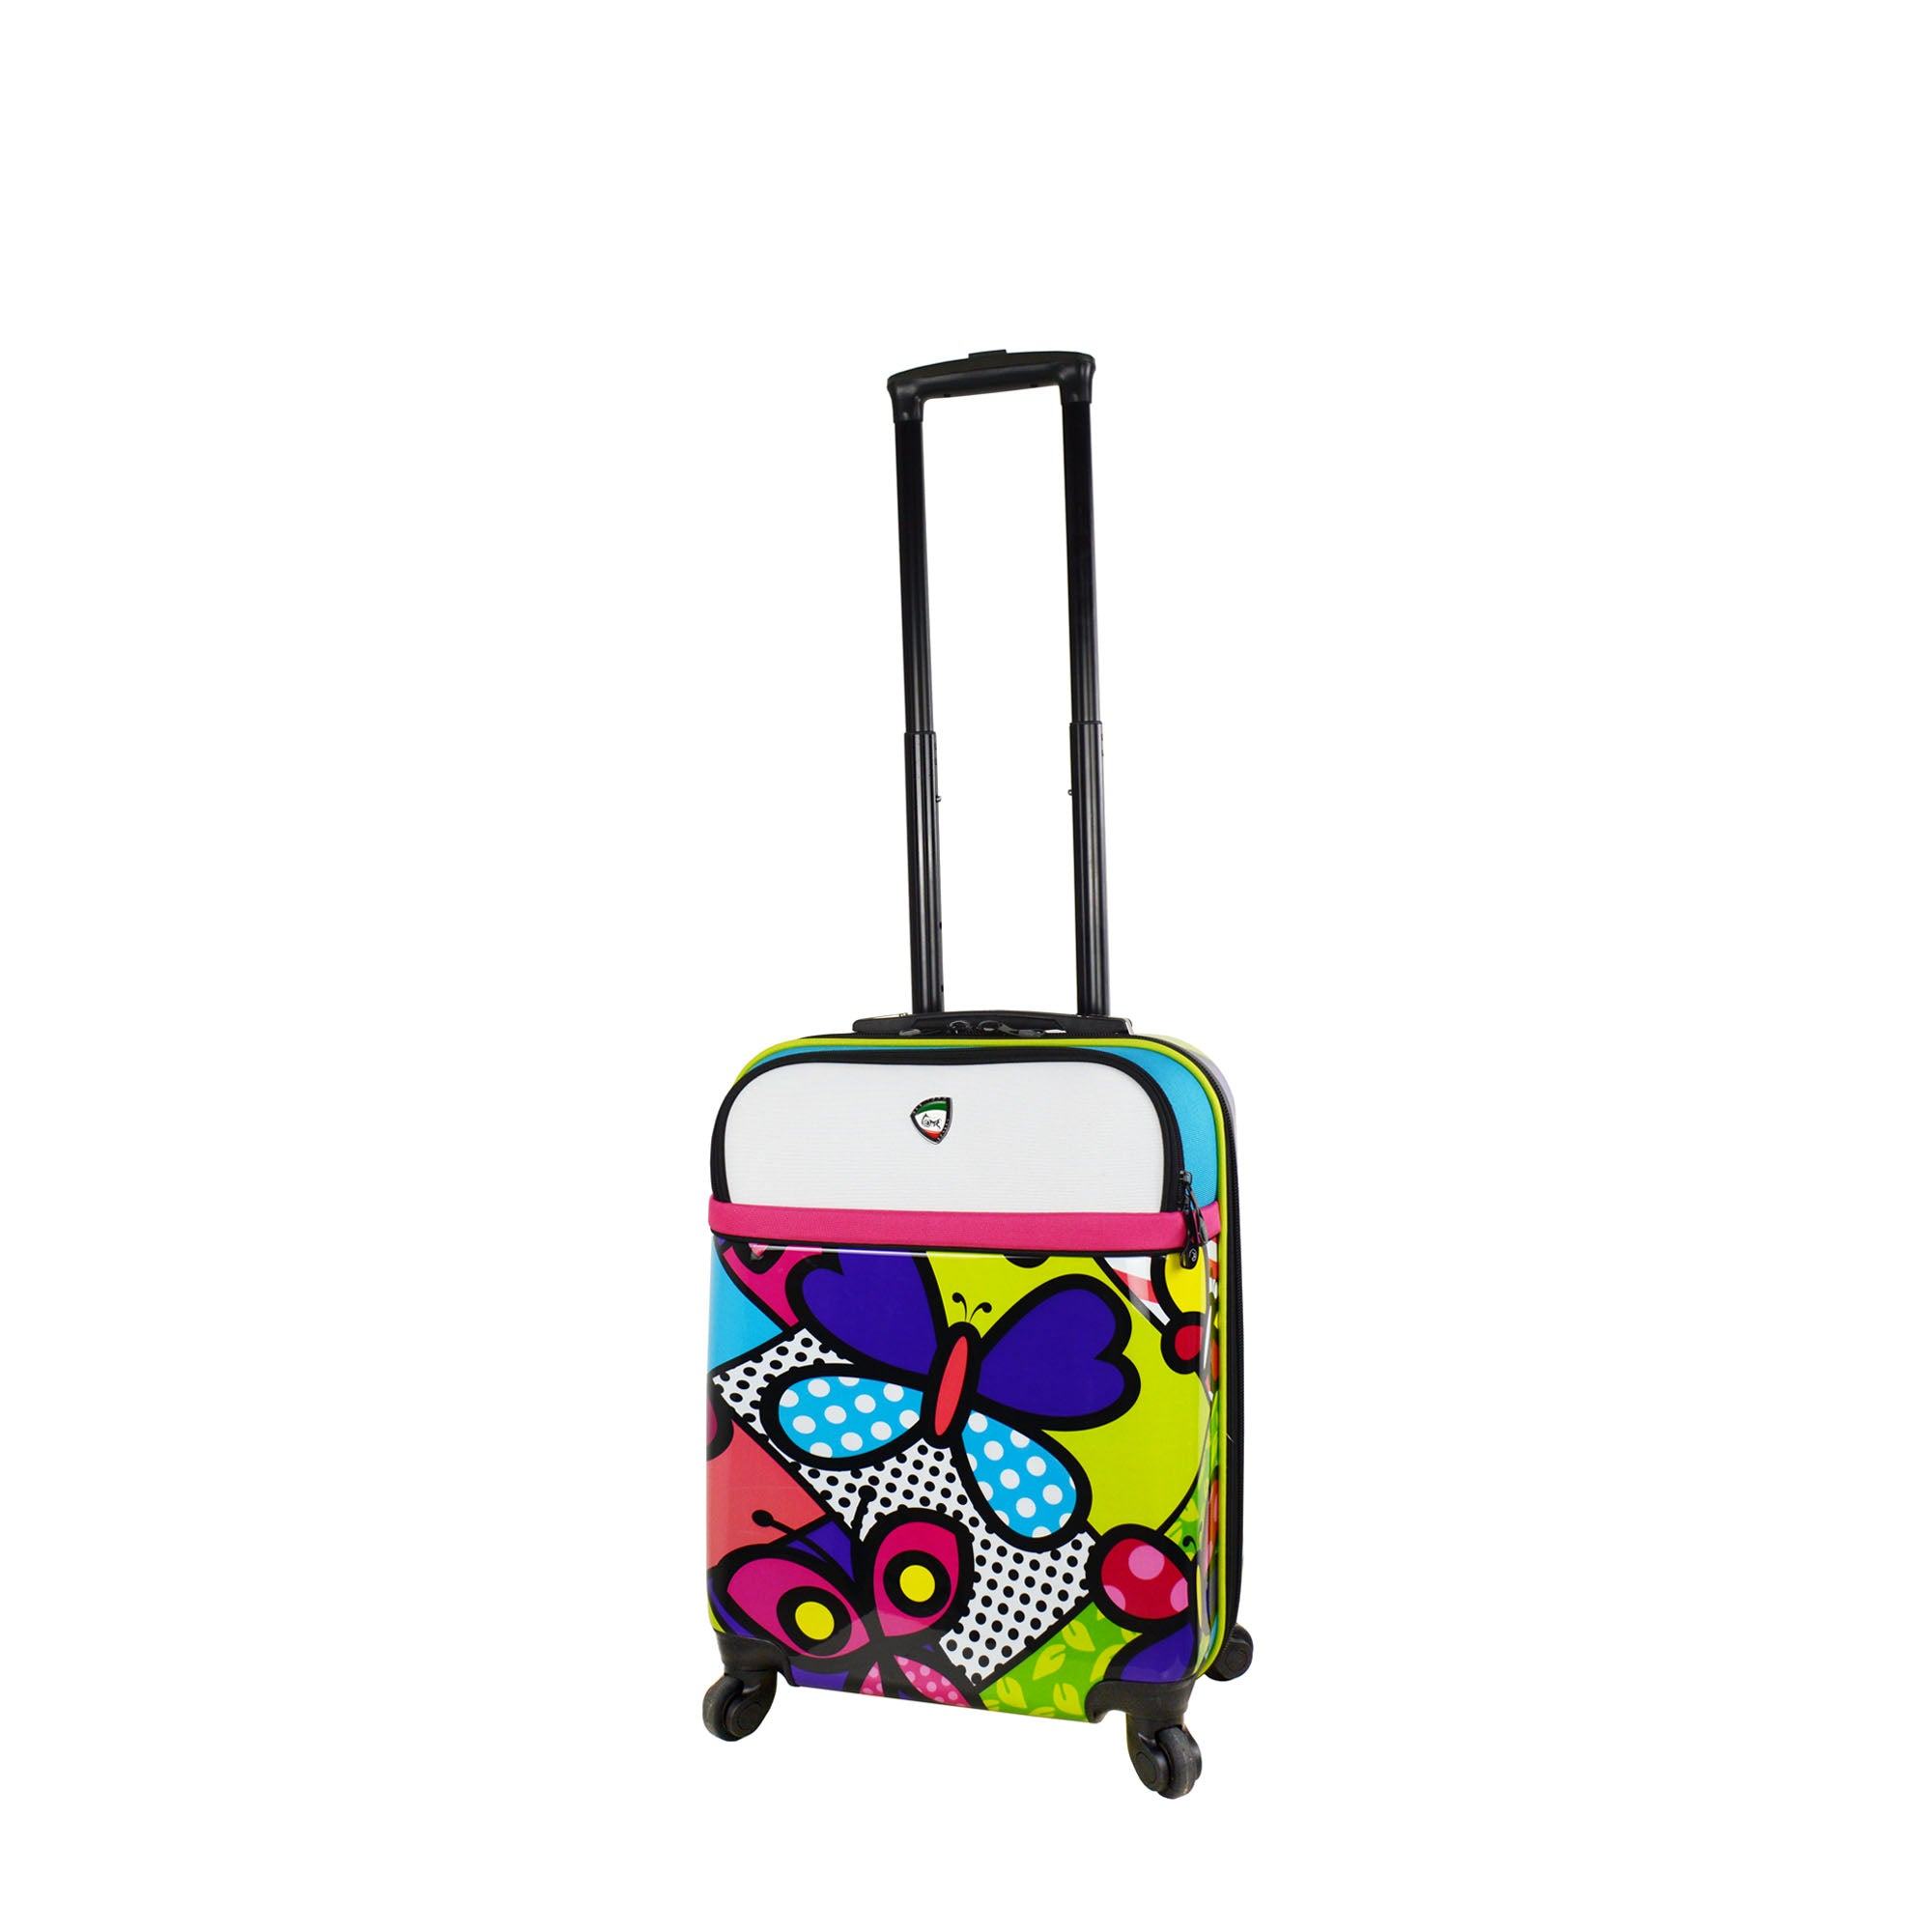 Mia Toro ITALY M by Mia Toro-Butterflies Hybrid Hardside Spinner Carry-On-Mia Toro